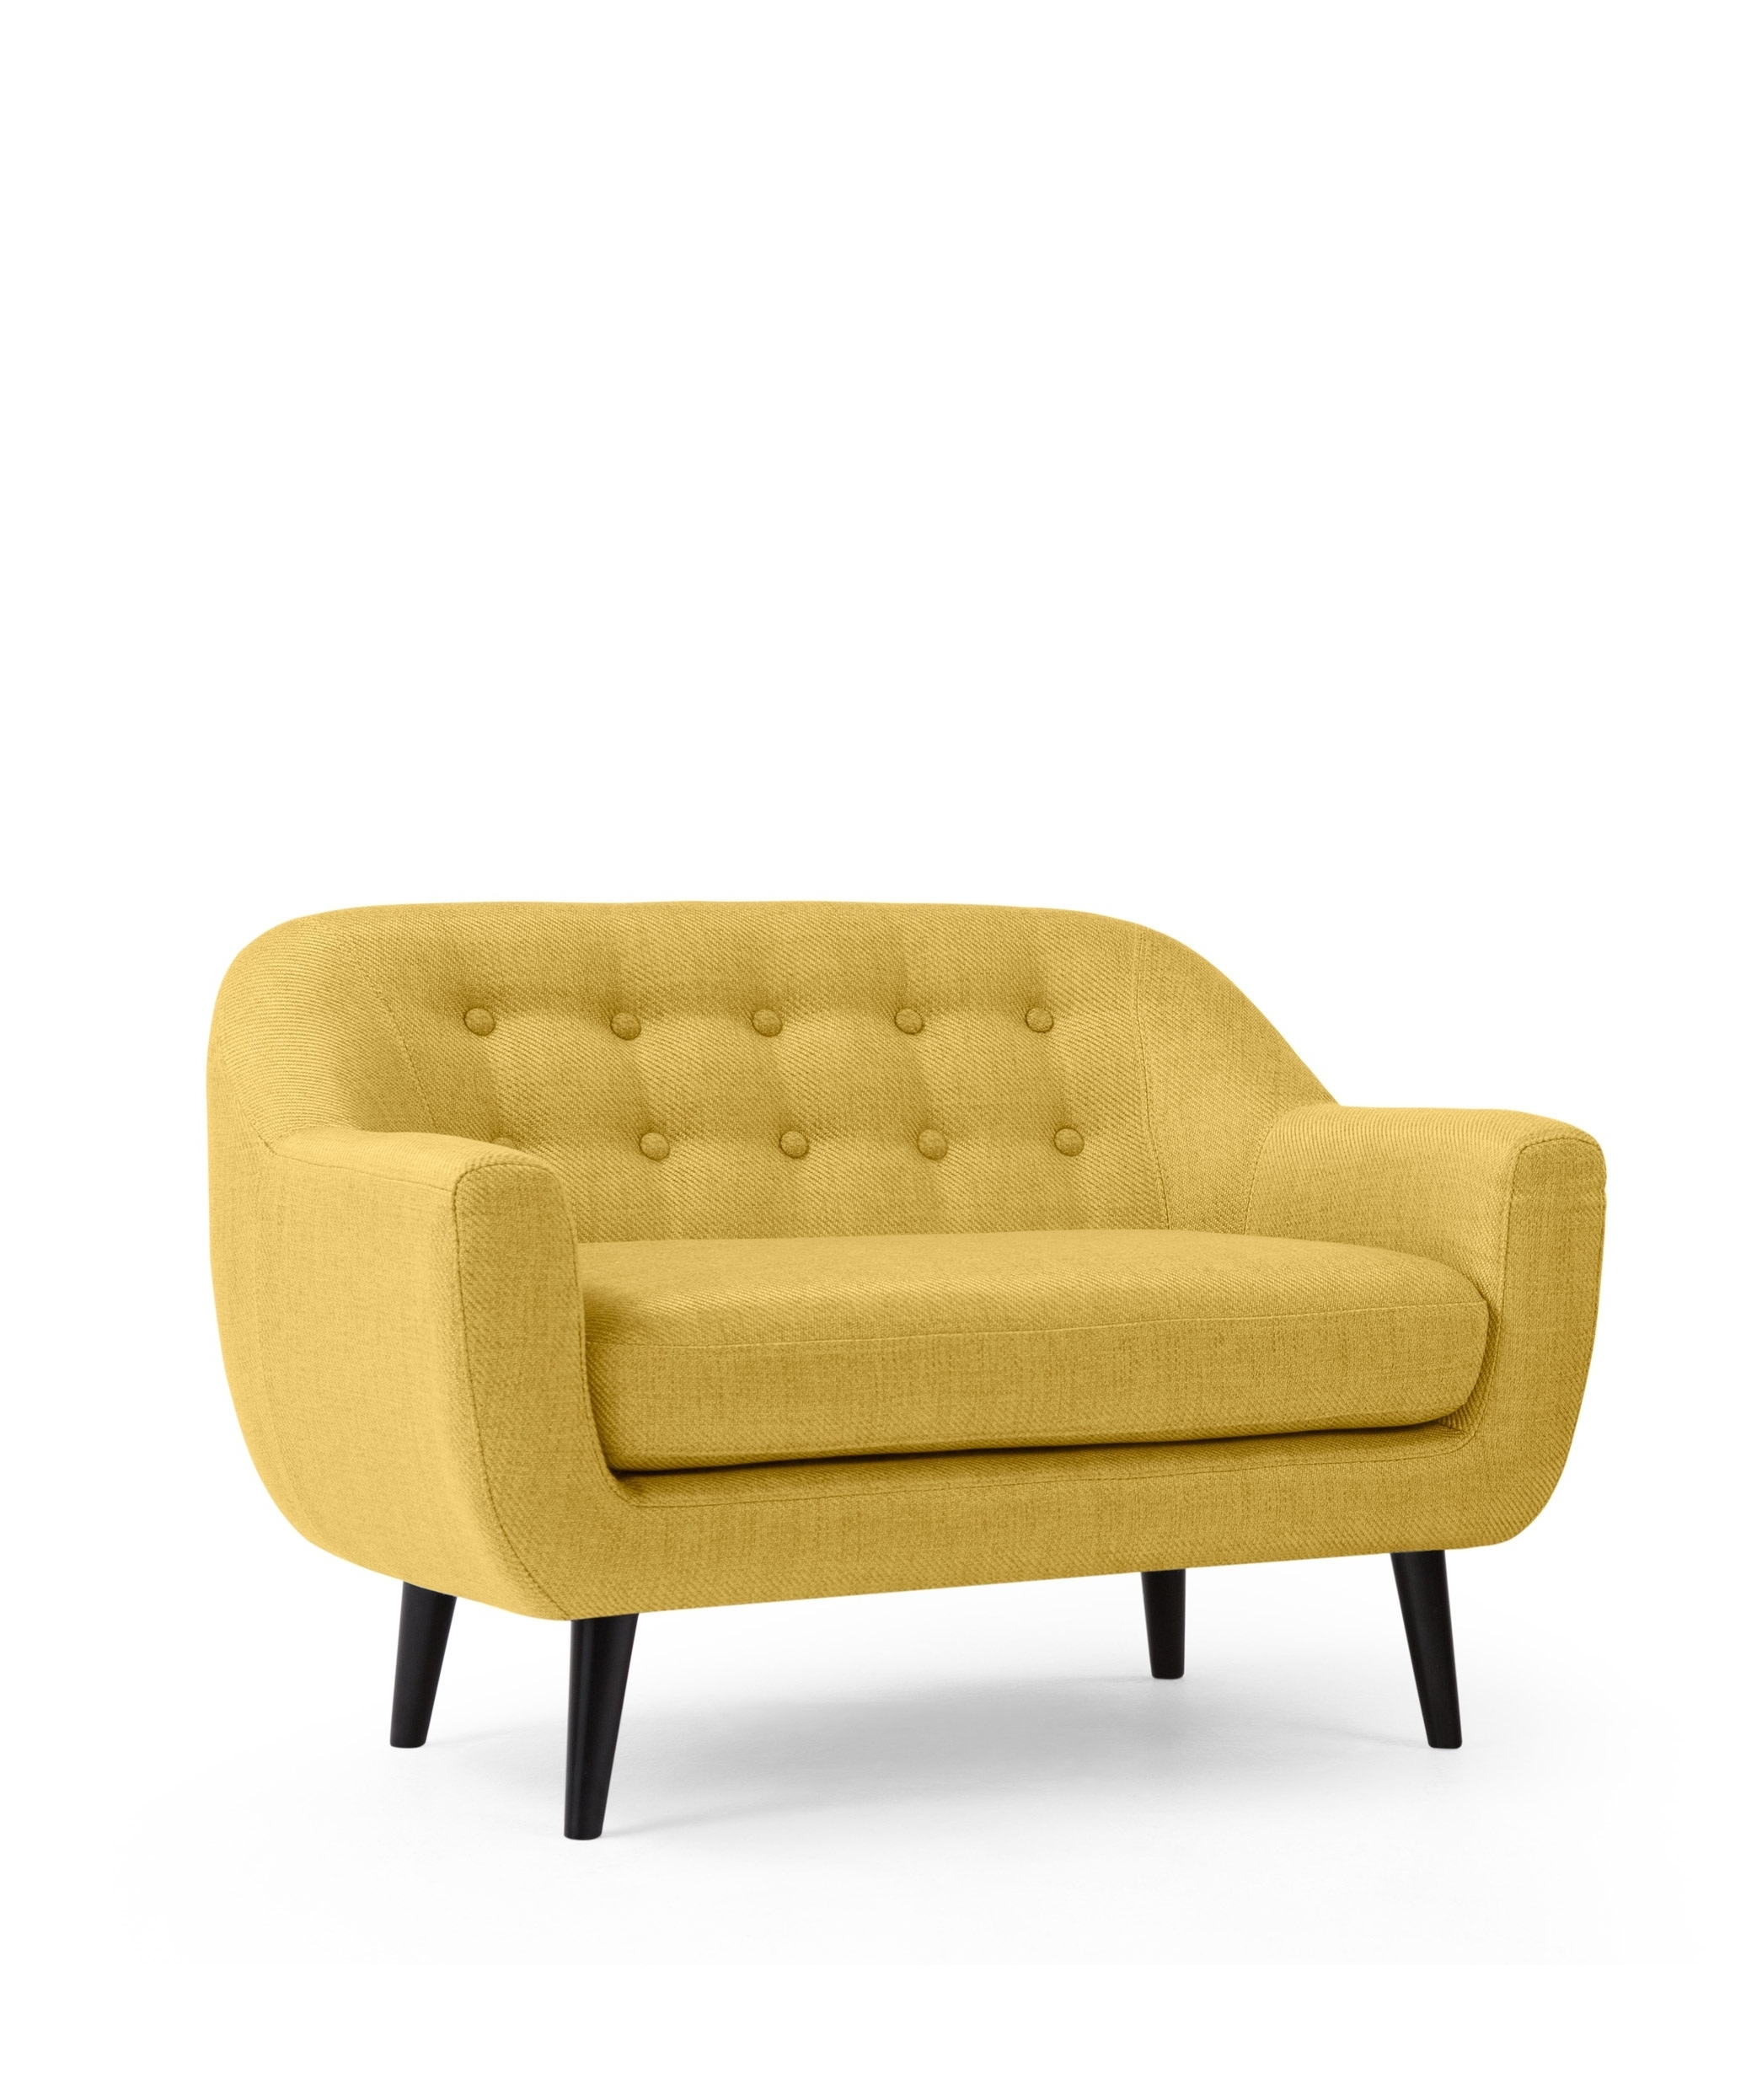 Most Recently Released Mini Sofas Regarding The Mini Ritchie 2 Seater Sofa, In Ochre Yellow (View 10 of 15)